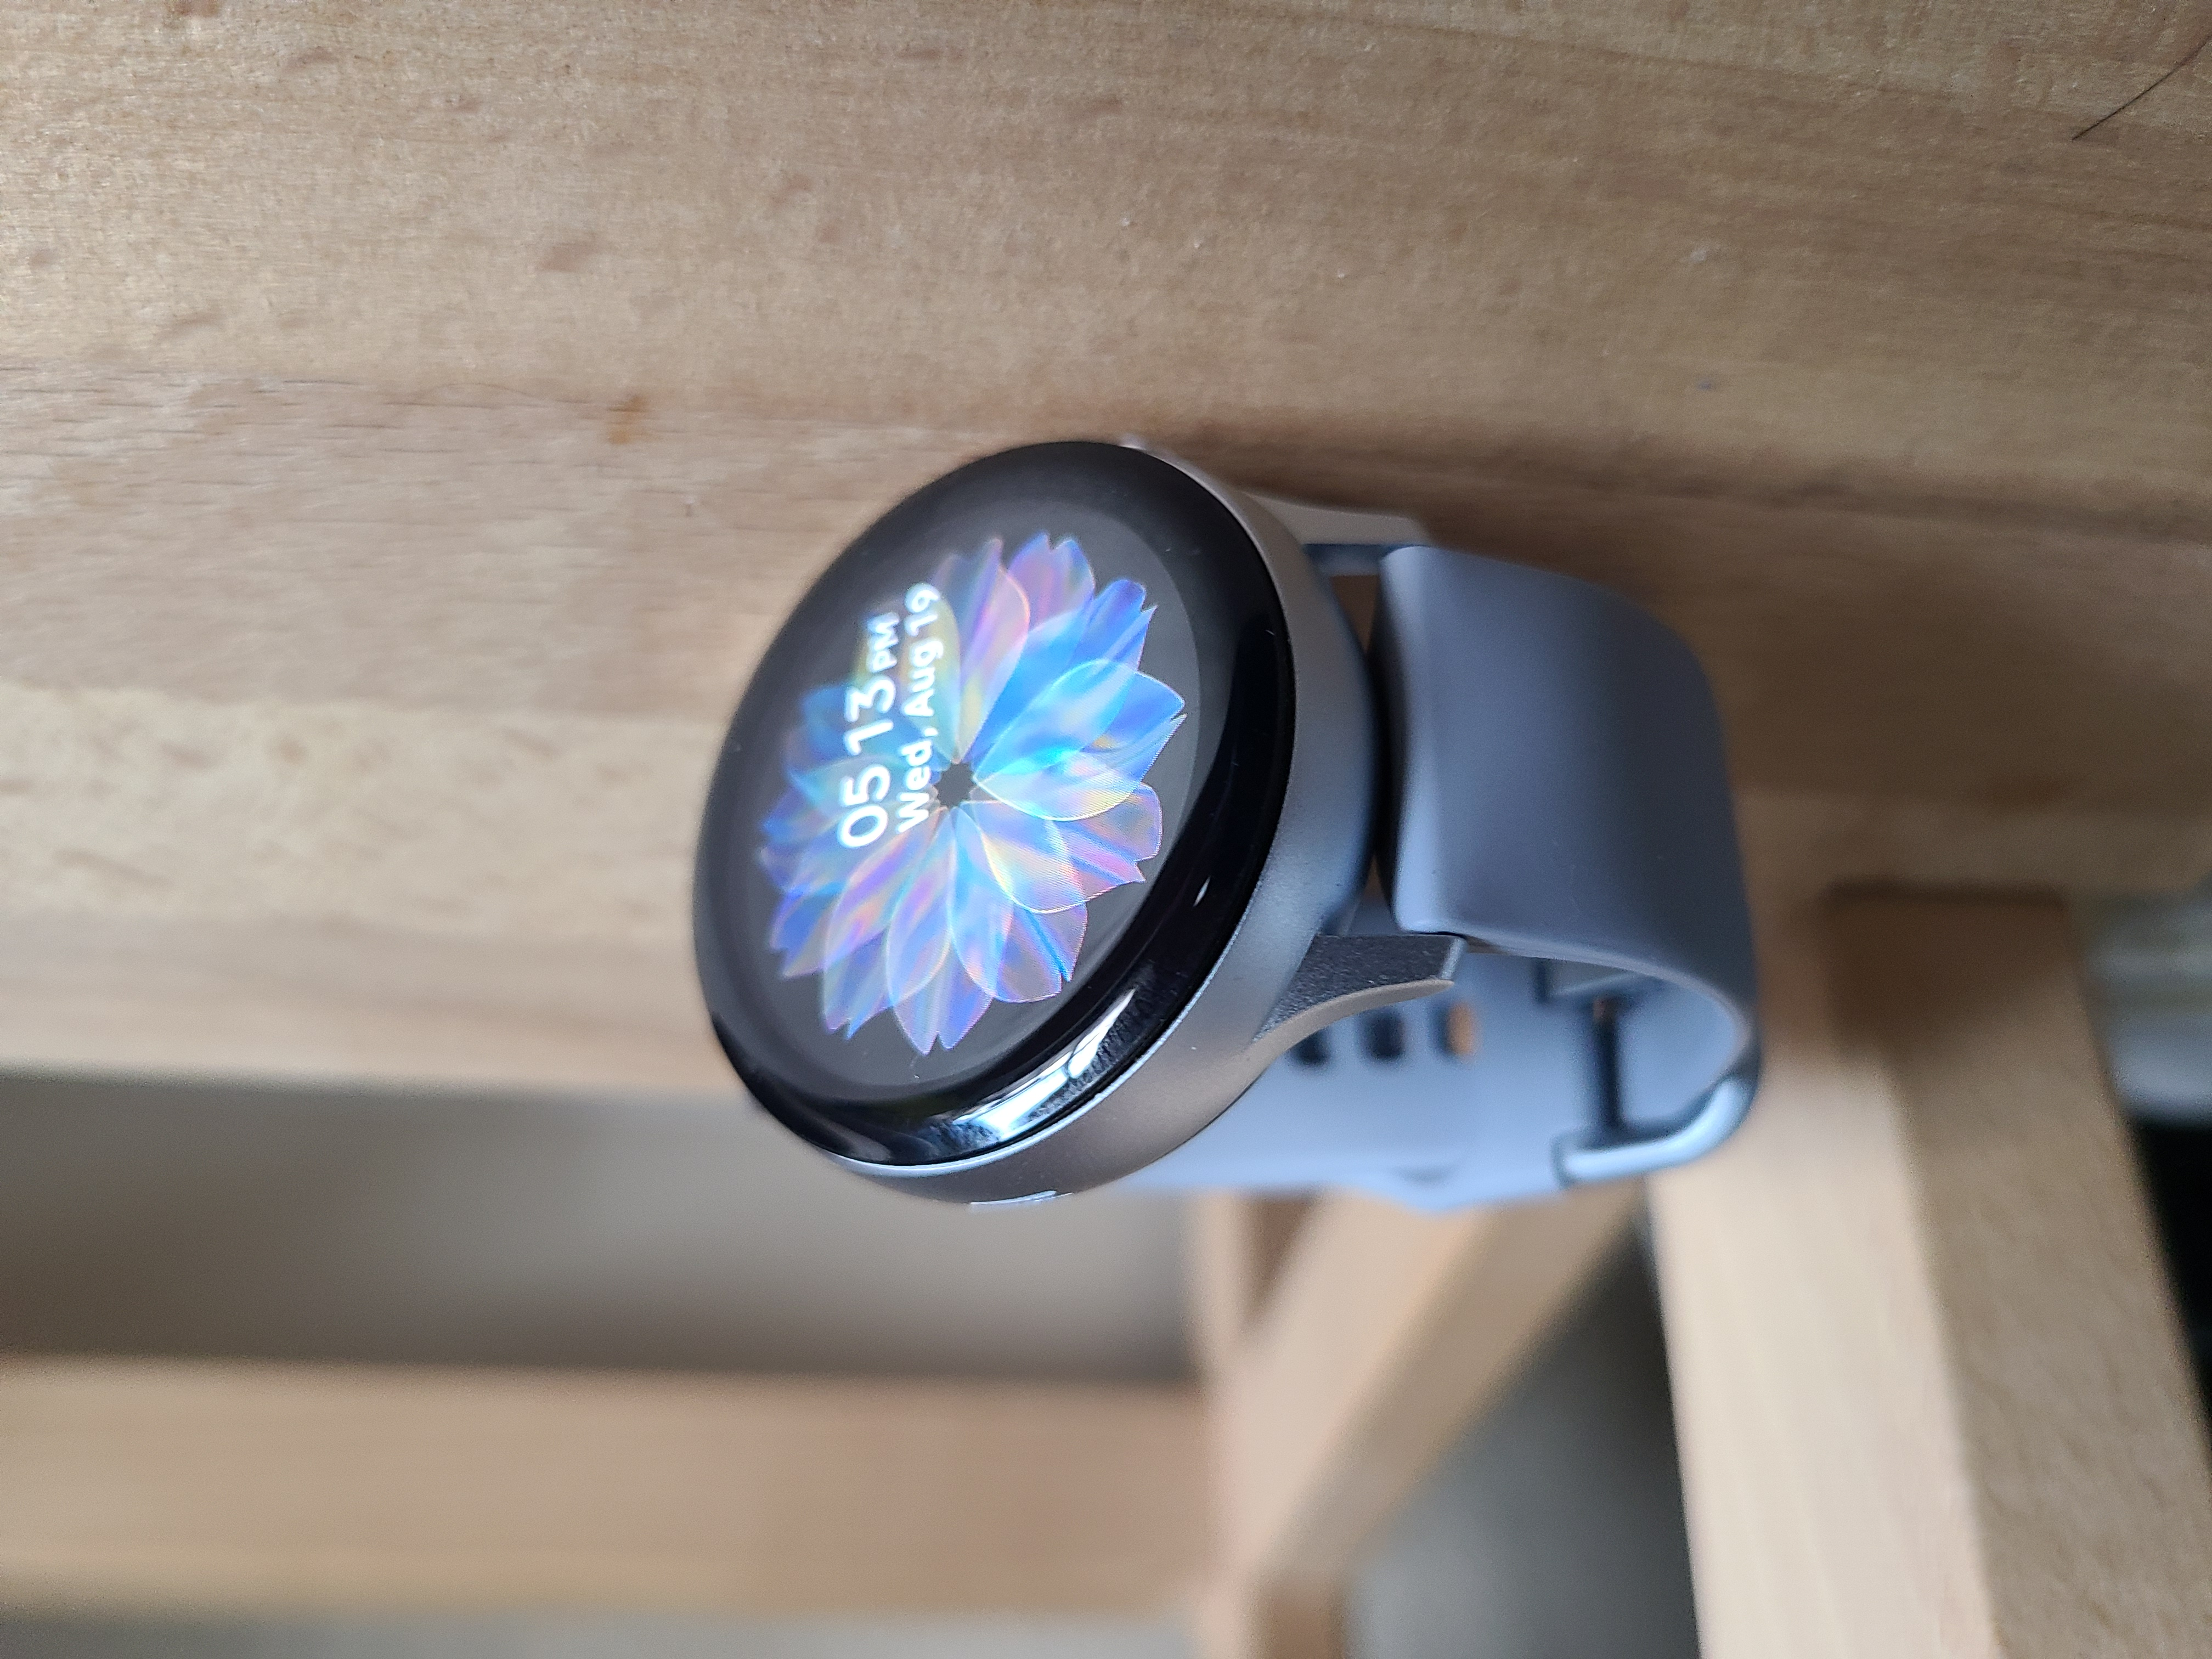 Samsung Galaxy Watch Active 2 with the live wallpaper watch face